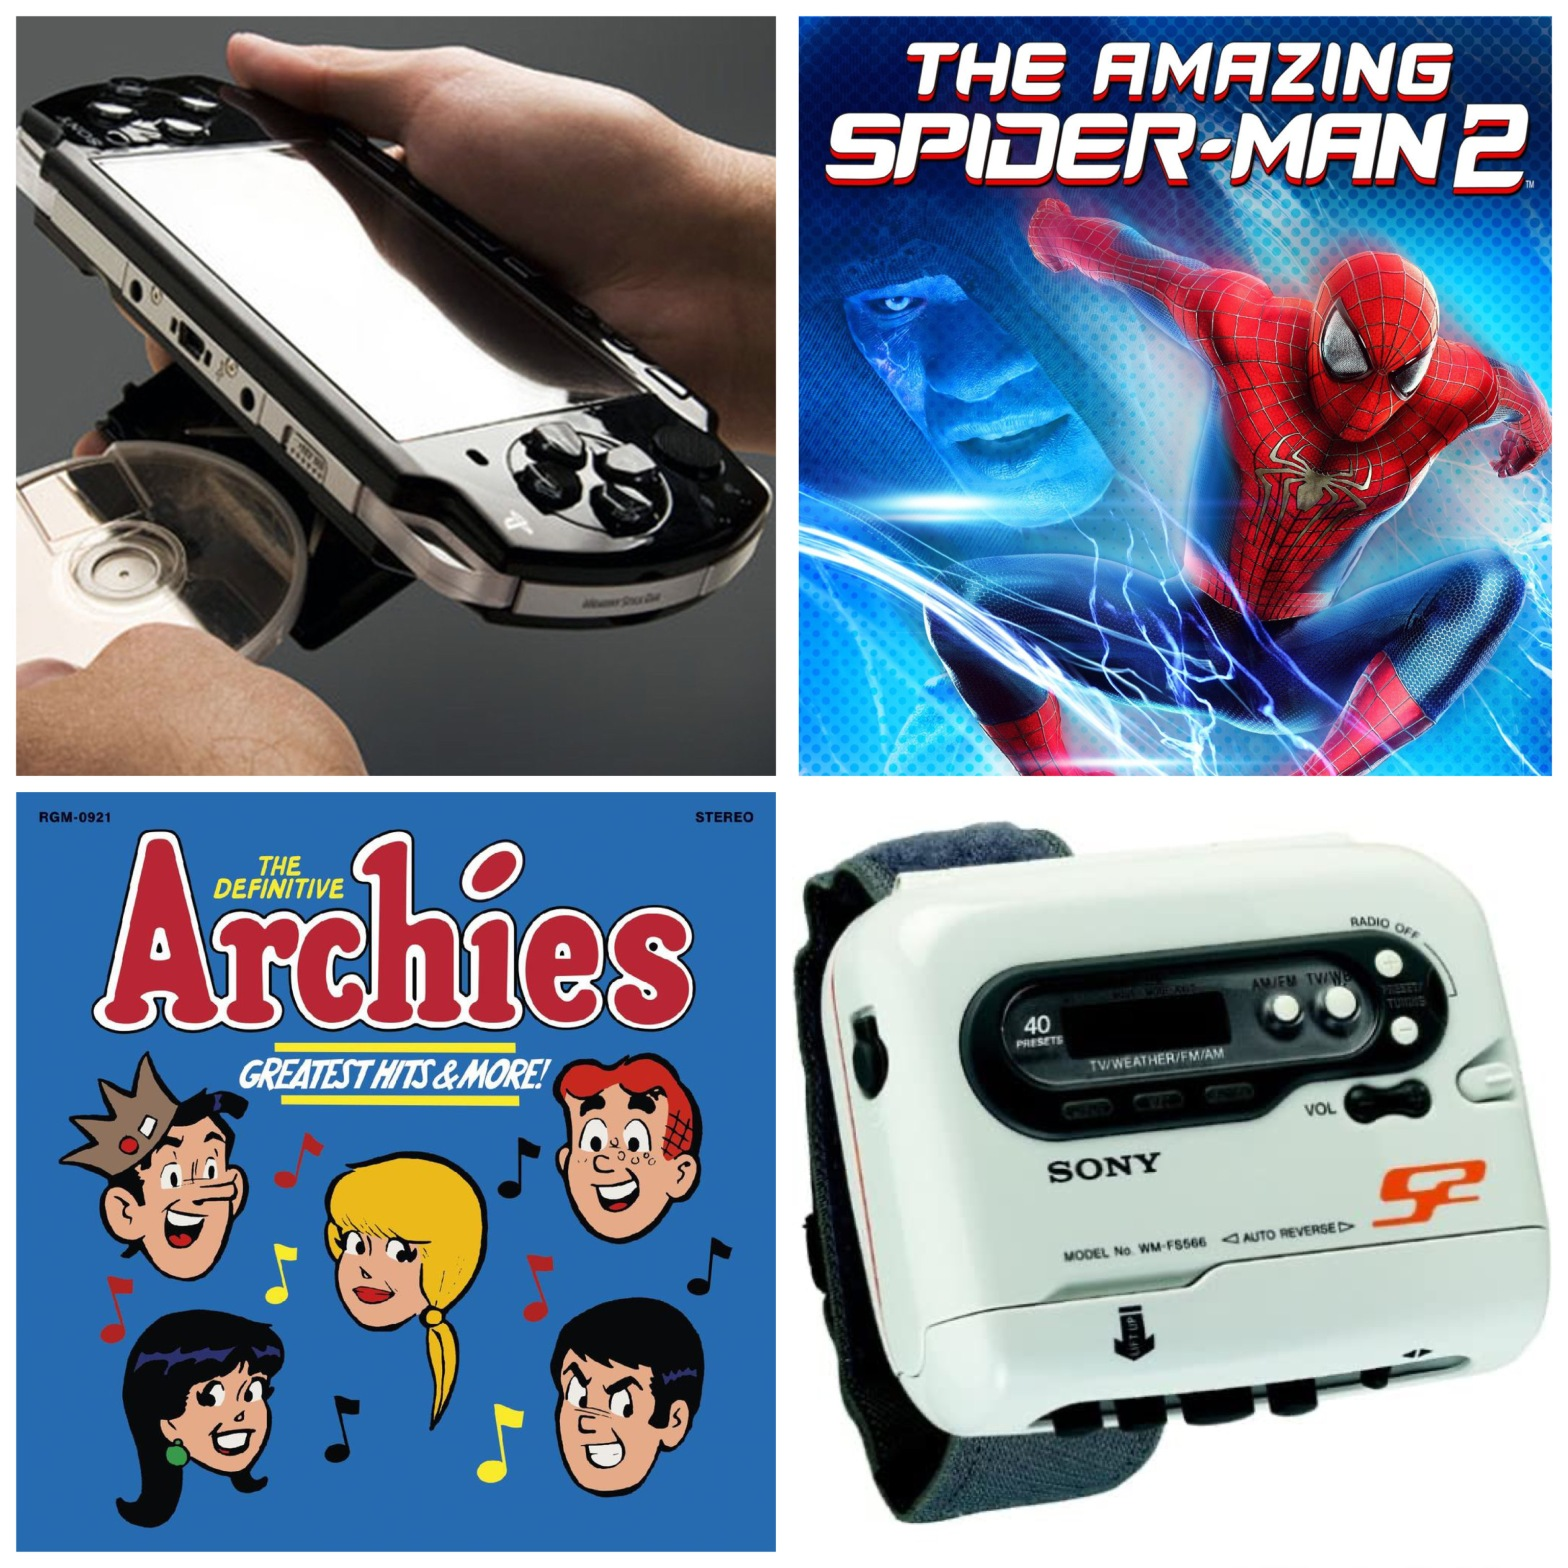 A Sony PSP, The Amazing Spider-Man 2, The Archies, and a Sony Walkman.